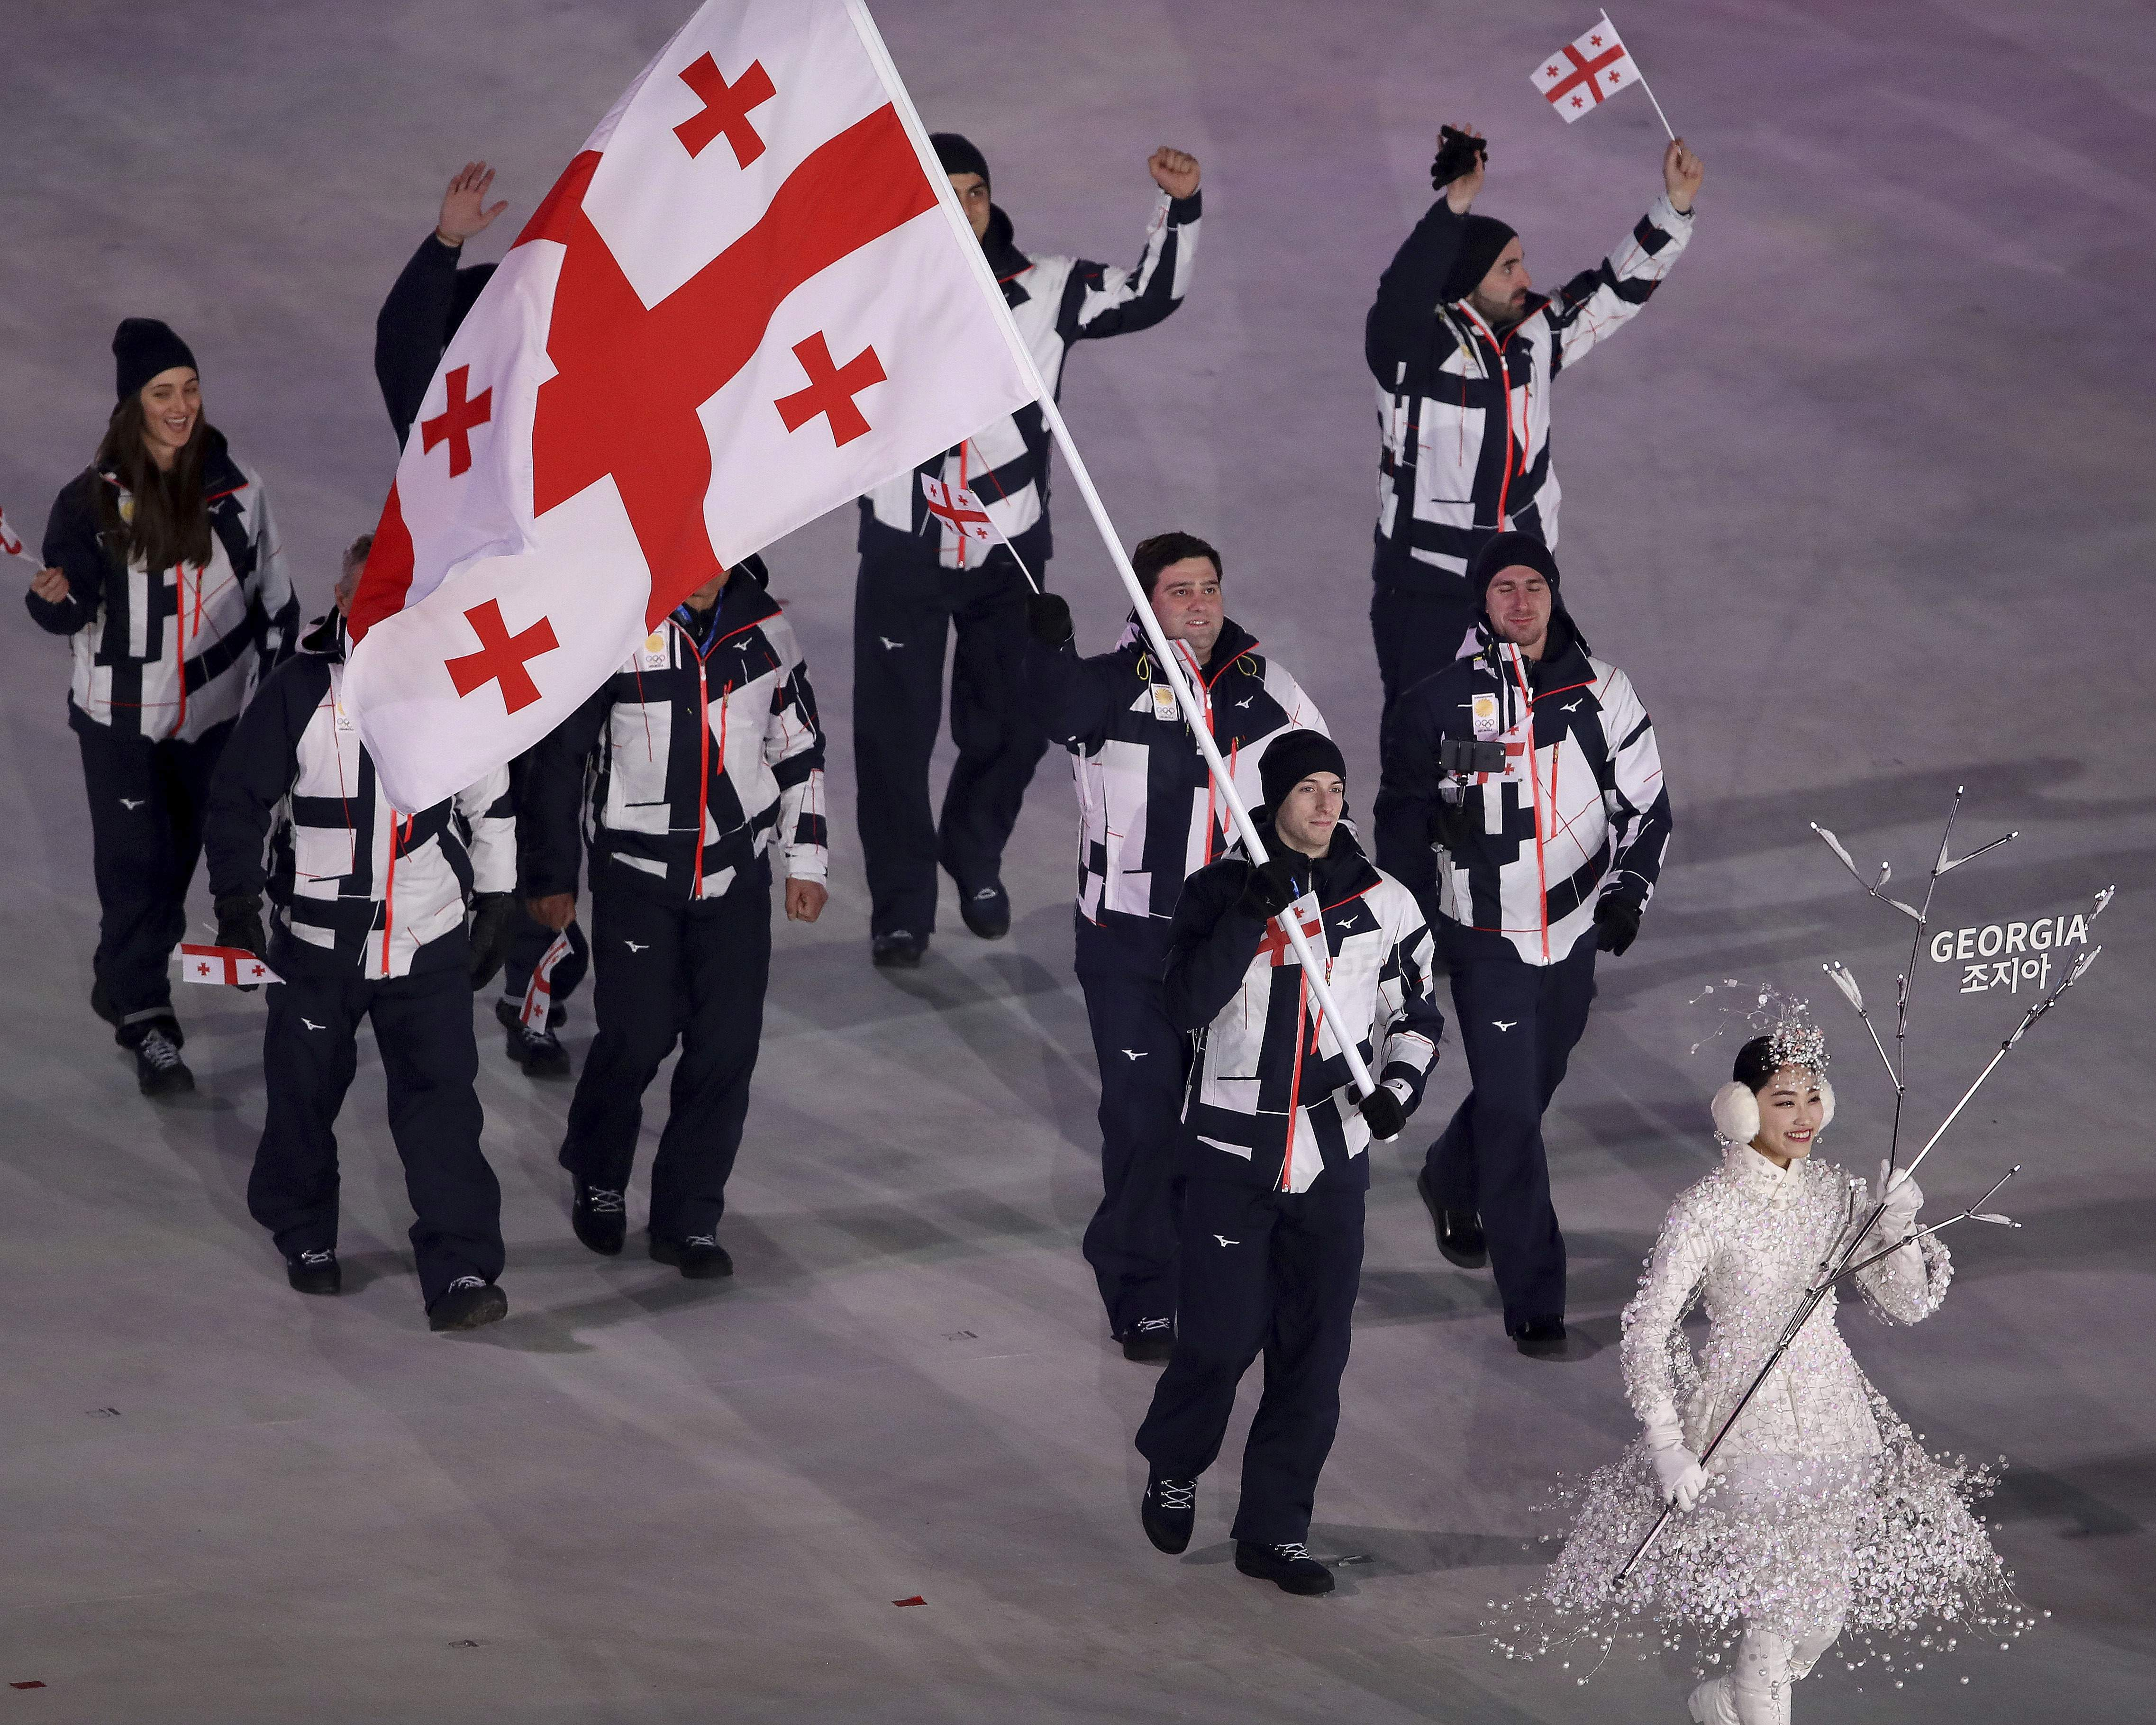 Morisi Kvitelashvili carries the flag of Georgia during the opening ceremony of the 2018 Winter Olympics in Pyeongchang, South Korea, Friday, Feb. 9, 2018. (Sean Haffey/Pool Photo via AP)